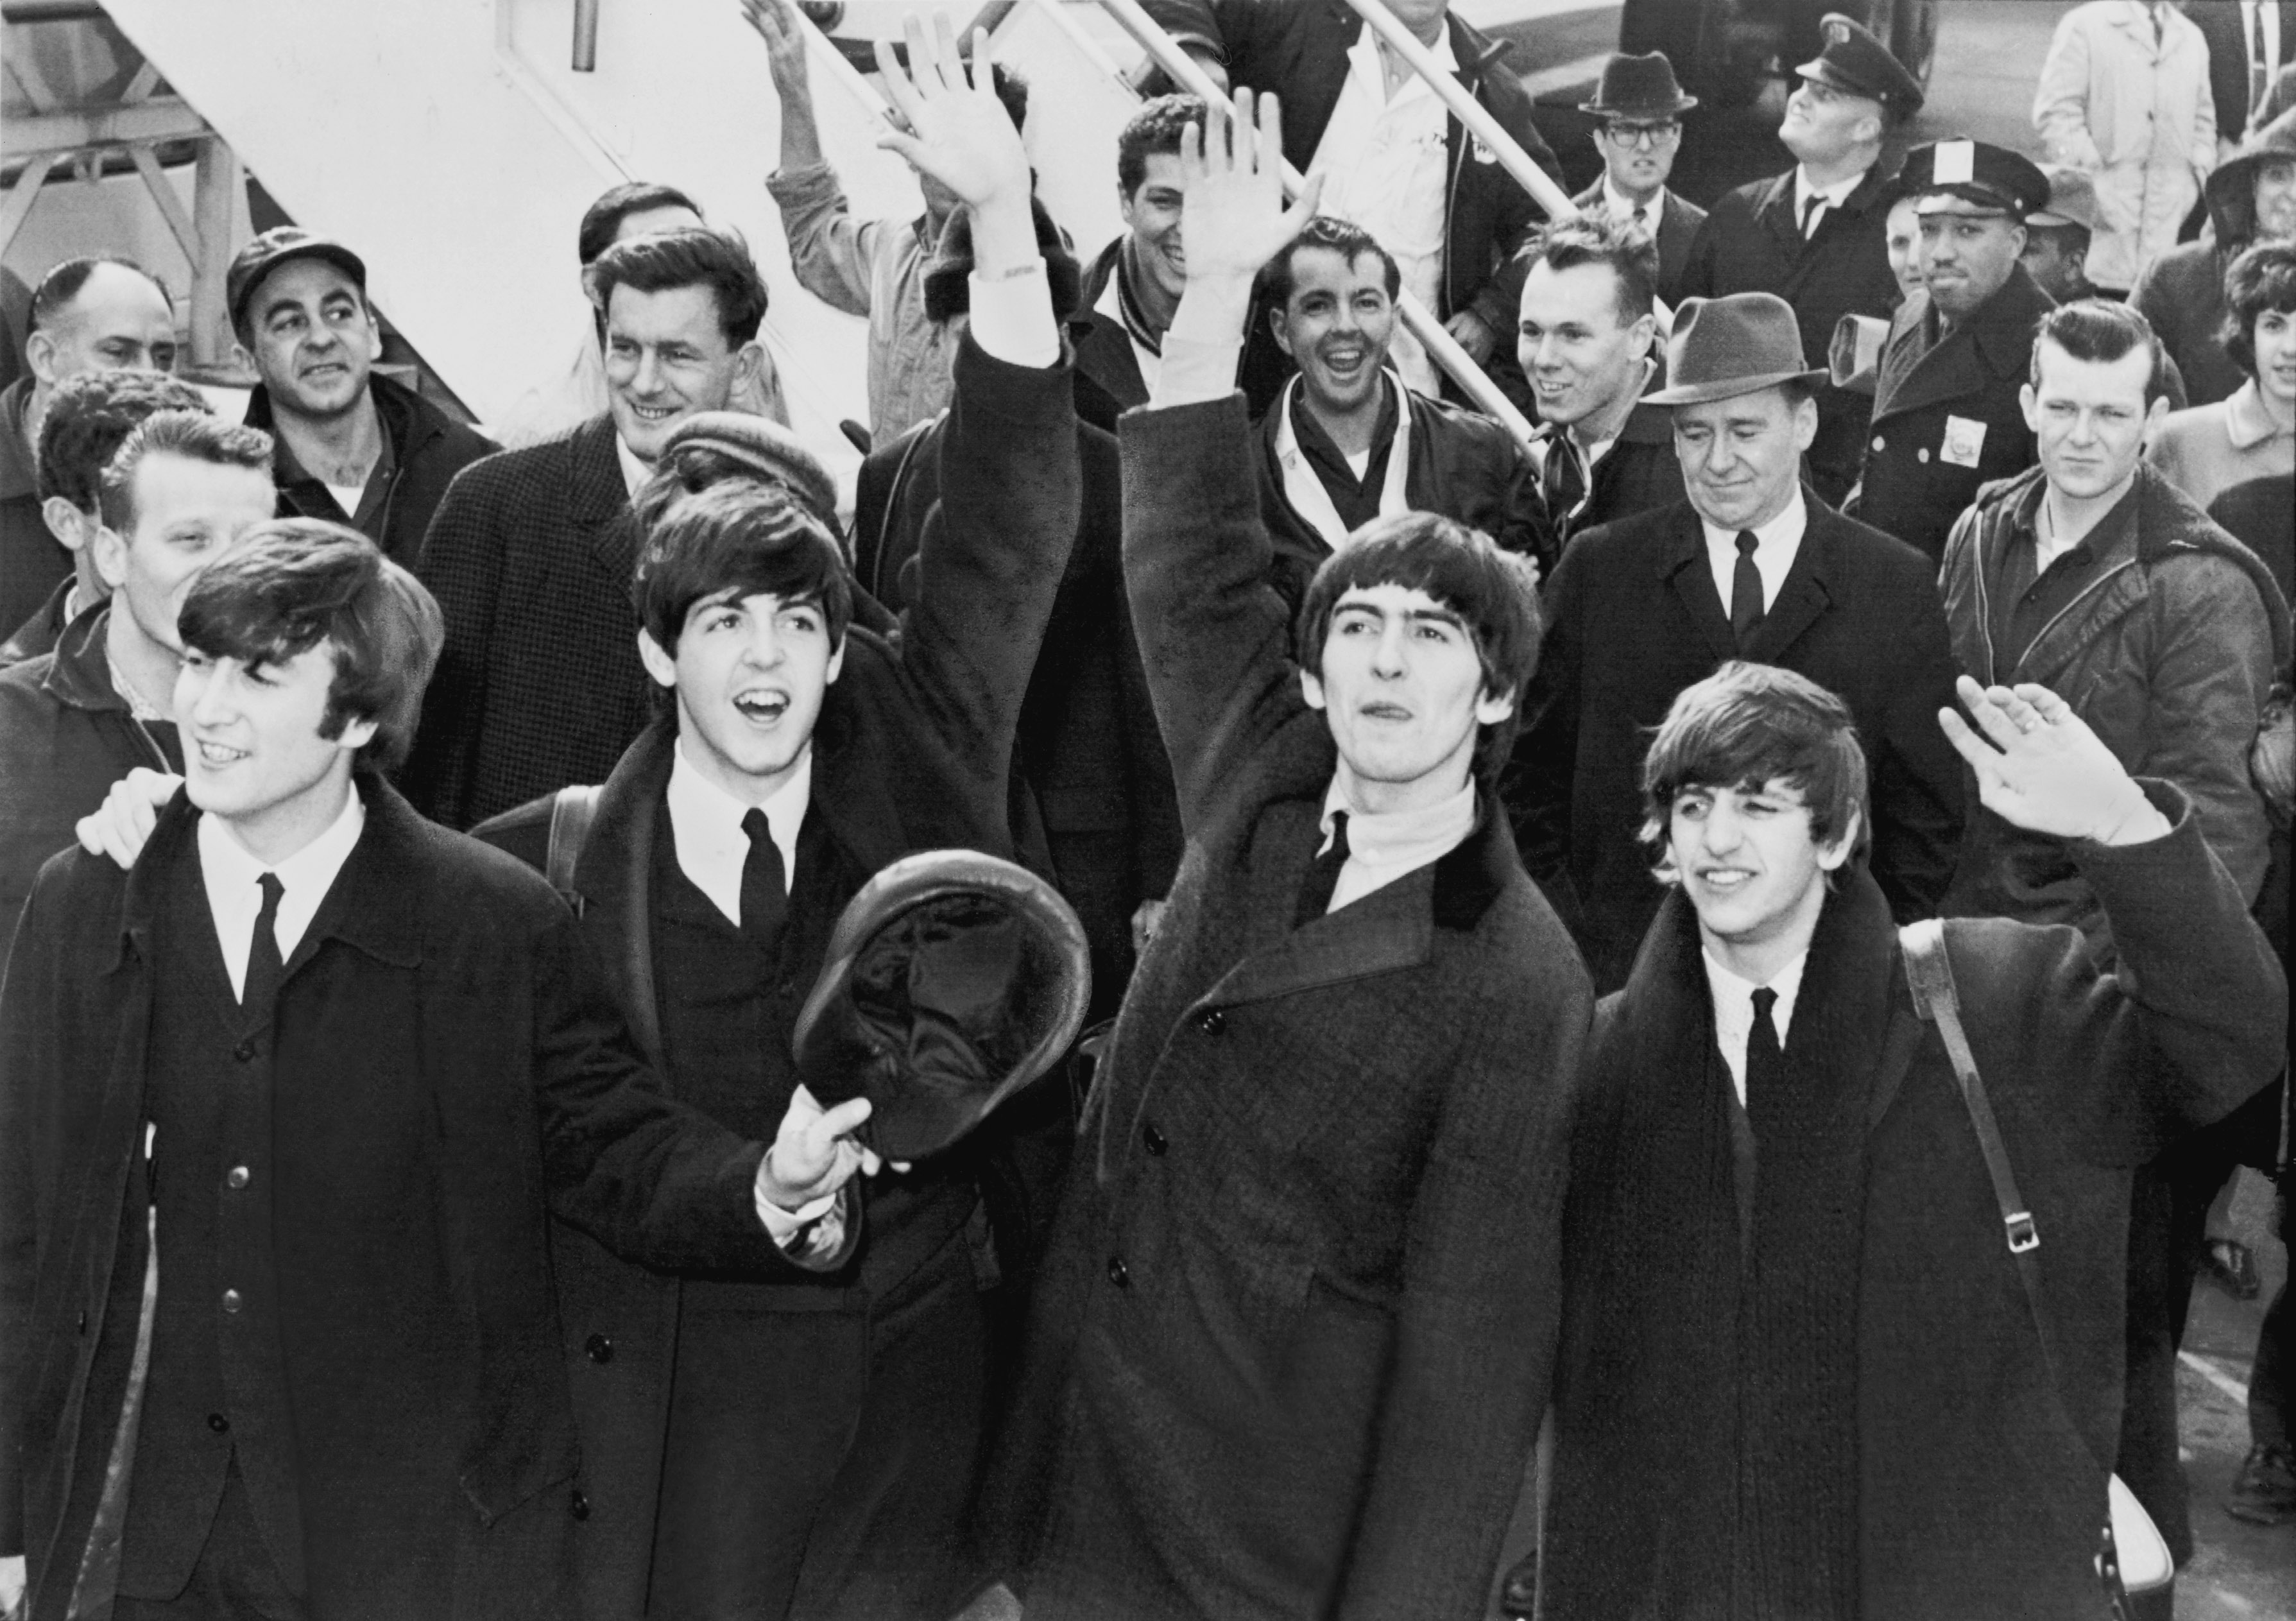 The Beatles wave to fans after arriving at John F. Kennedy International Airport, New York on February 7, 1964. Universal Press International photo. This image is available from the United States Library of Congress's Prints and Photographs division under the digital ID cph.3c11094.